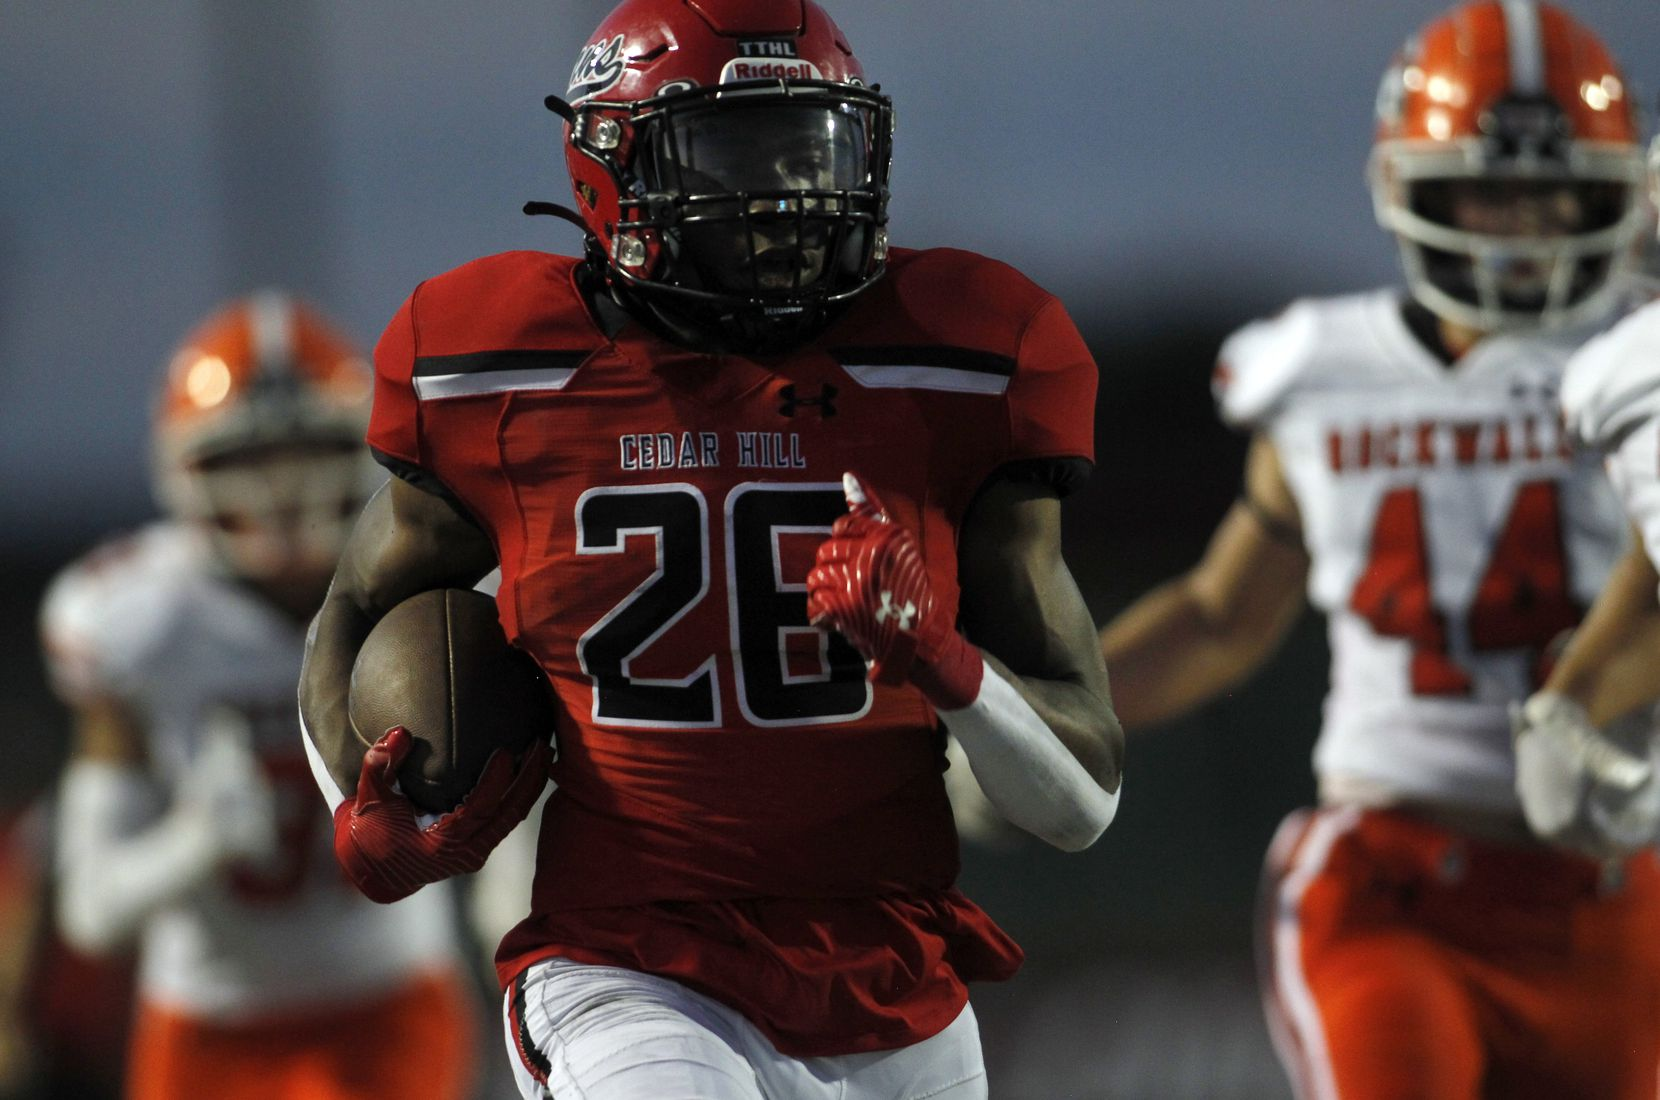 Cedar Hill running back Jaylen Jenkins (26) outruns a host of Rockwall defenders enroute to a 55-yard rushing touchdown during first half action. Cedar Hill and Rockwall played their season opening football game at Longhorn Stadium in Cedar Hill on August 27, 2021. (Steve Hamm/ Special Contributor)